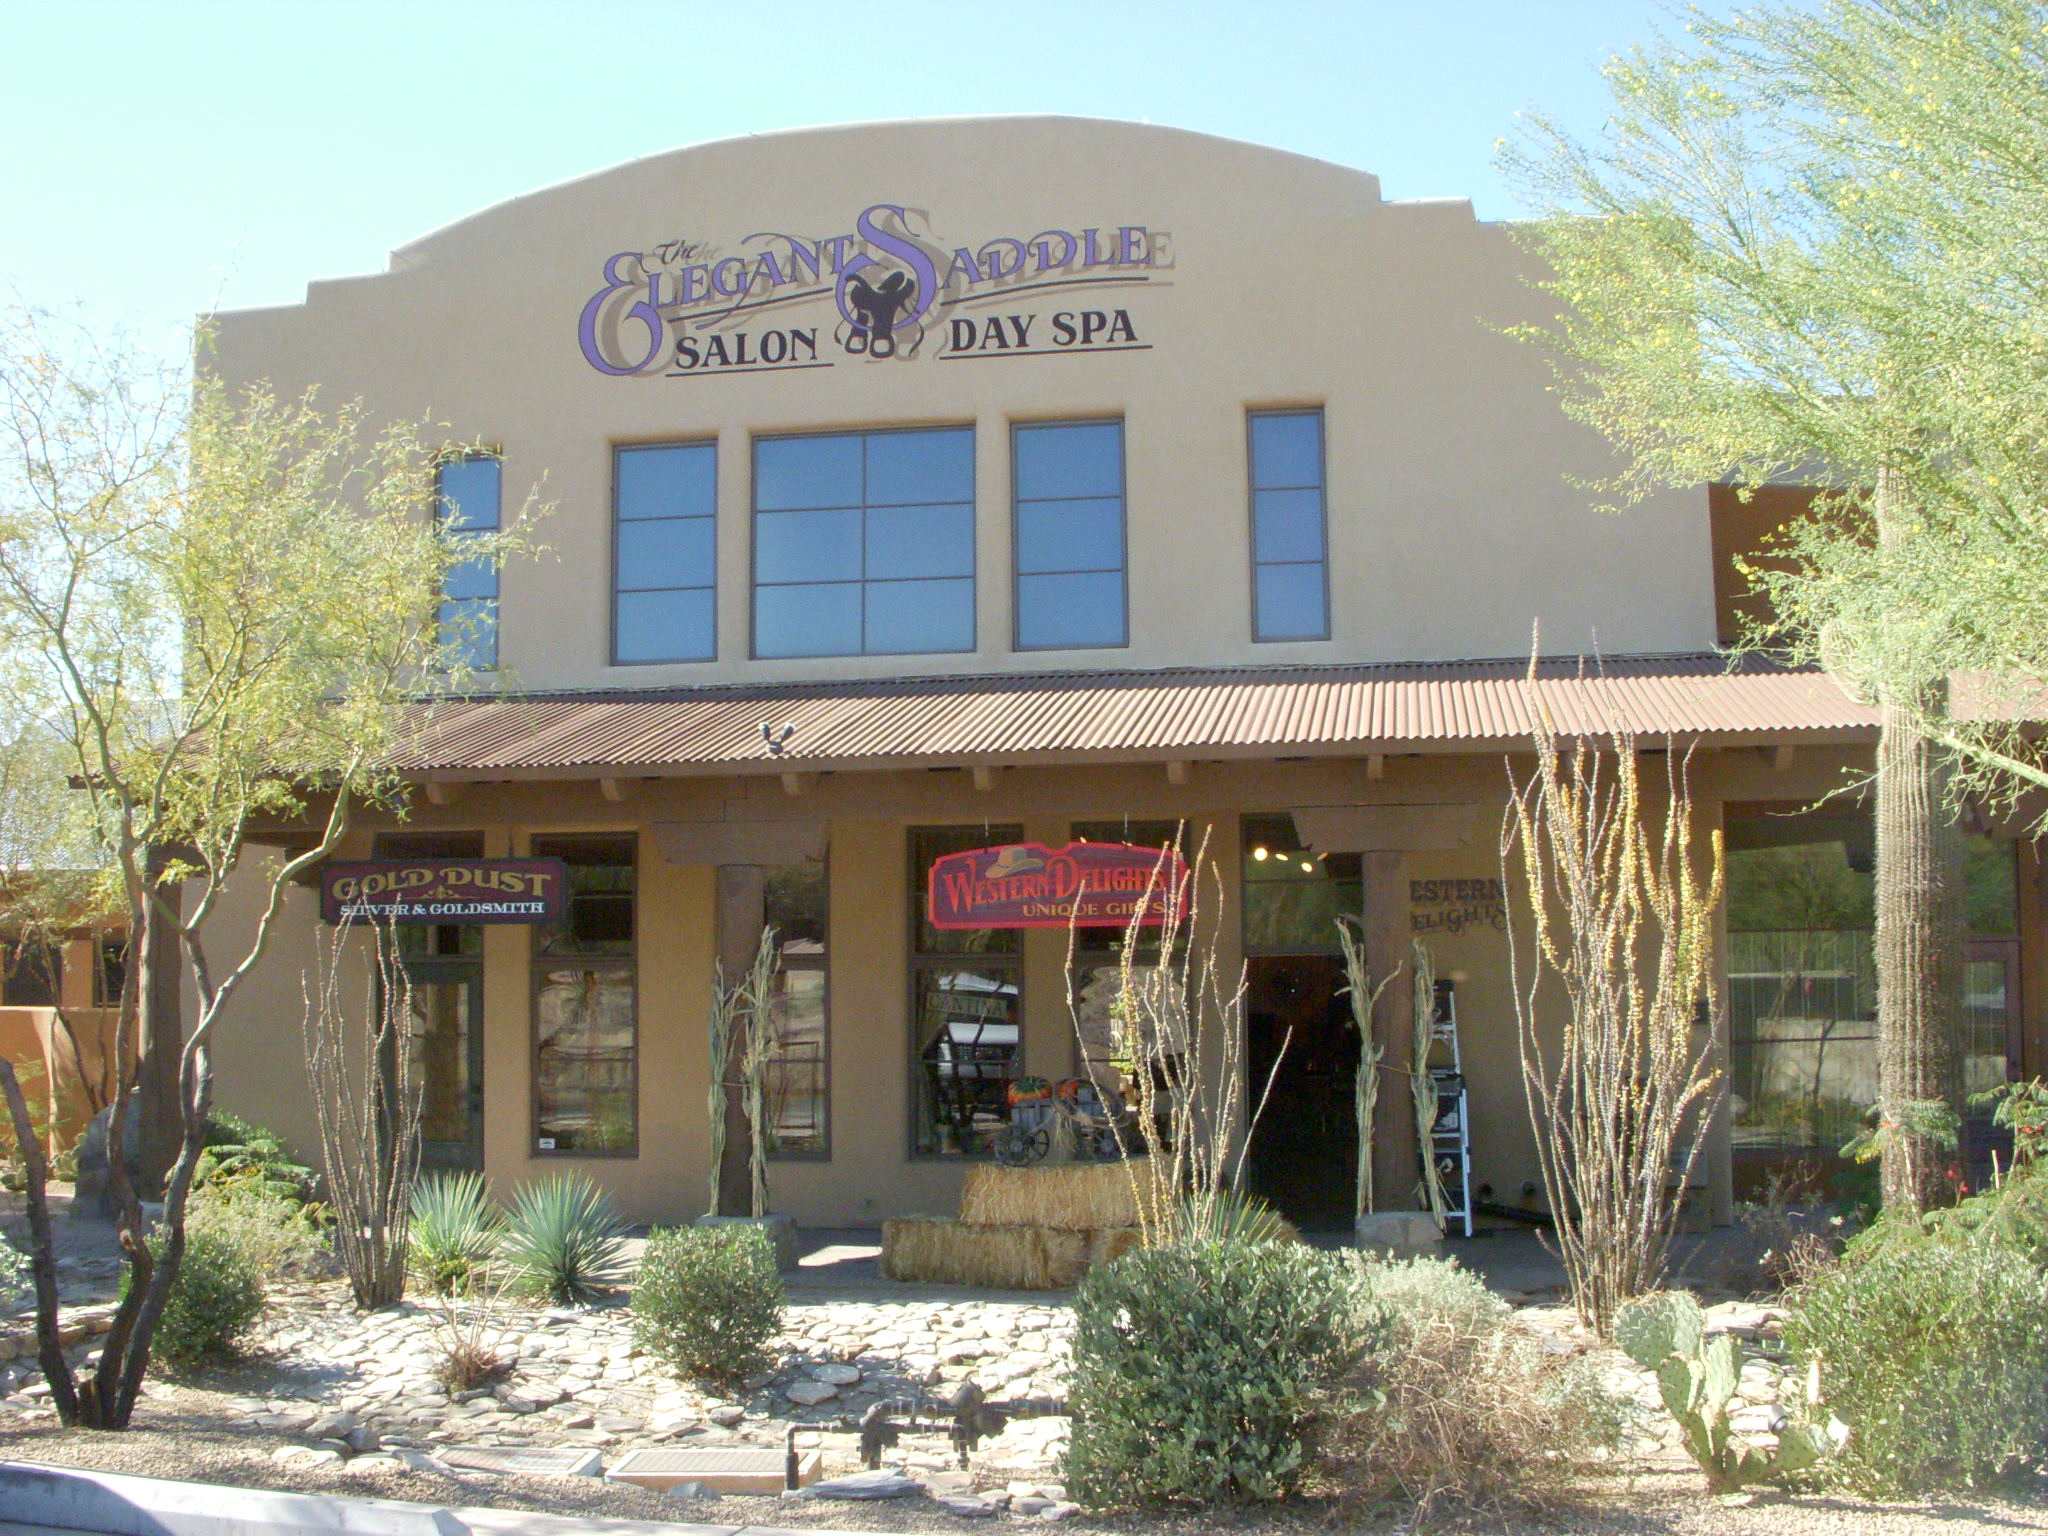 An outside view of Elegant Saddle Salon and Day Spa in Cave Creek.